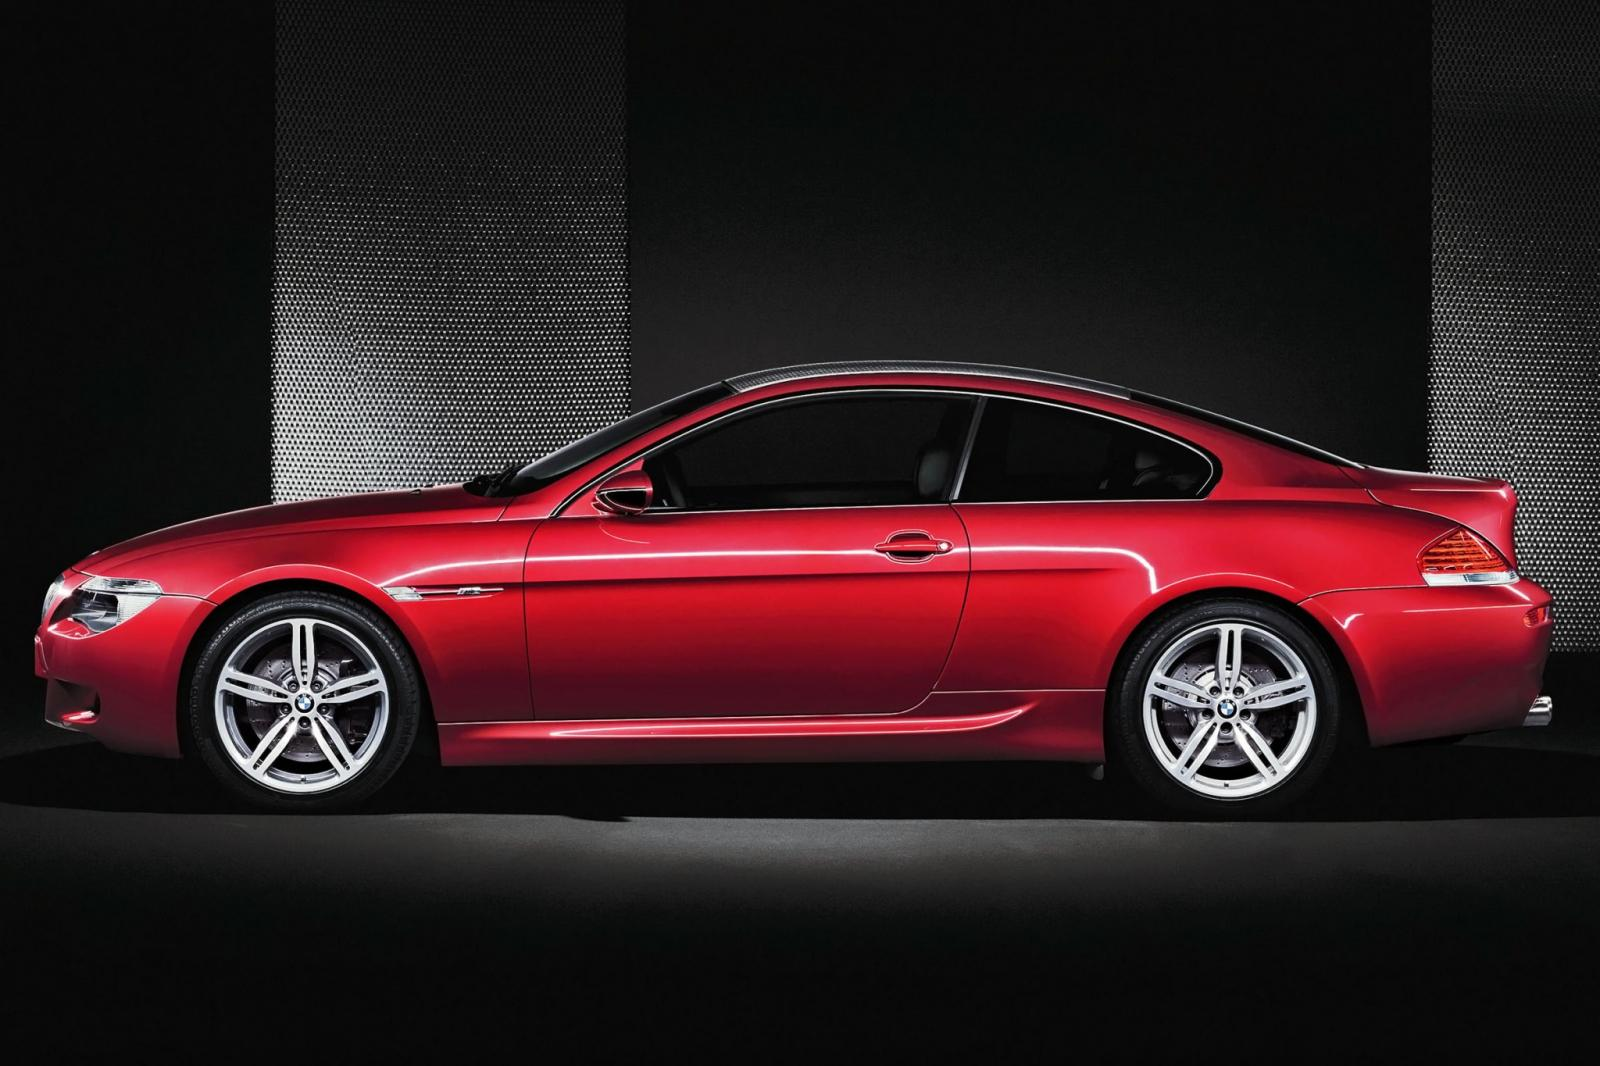 2007 bmw m6 information and photos zombiedrive. Black Bedroom Furniture Sets. Home Design Ideas